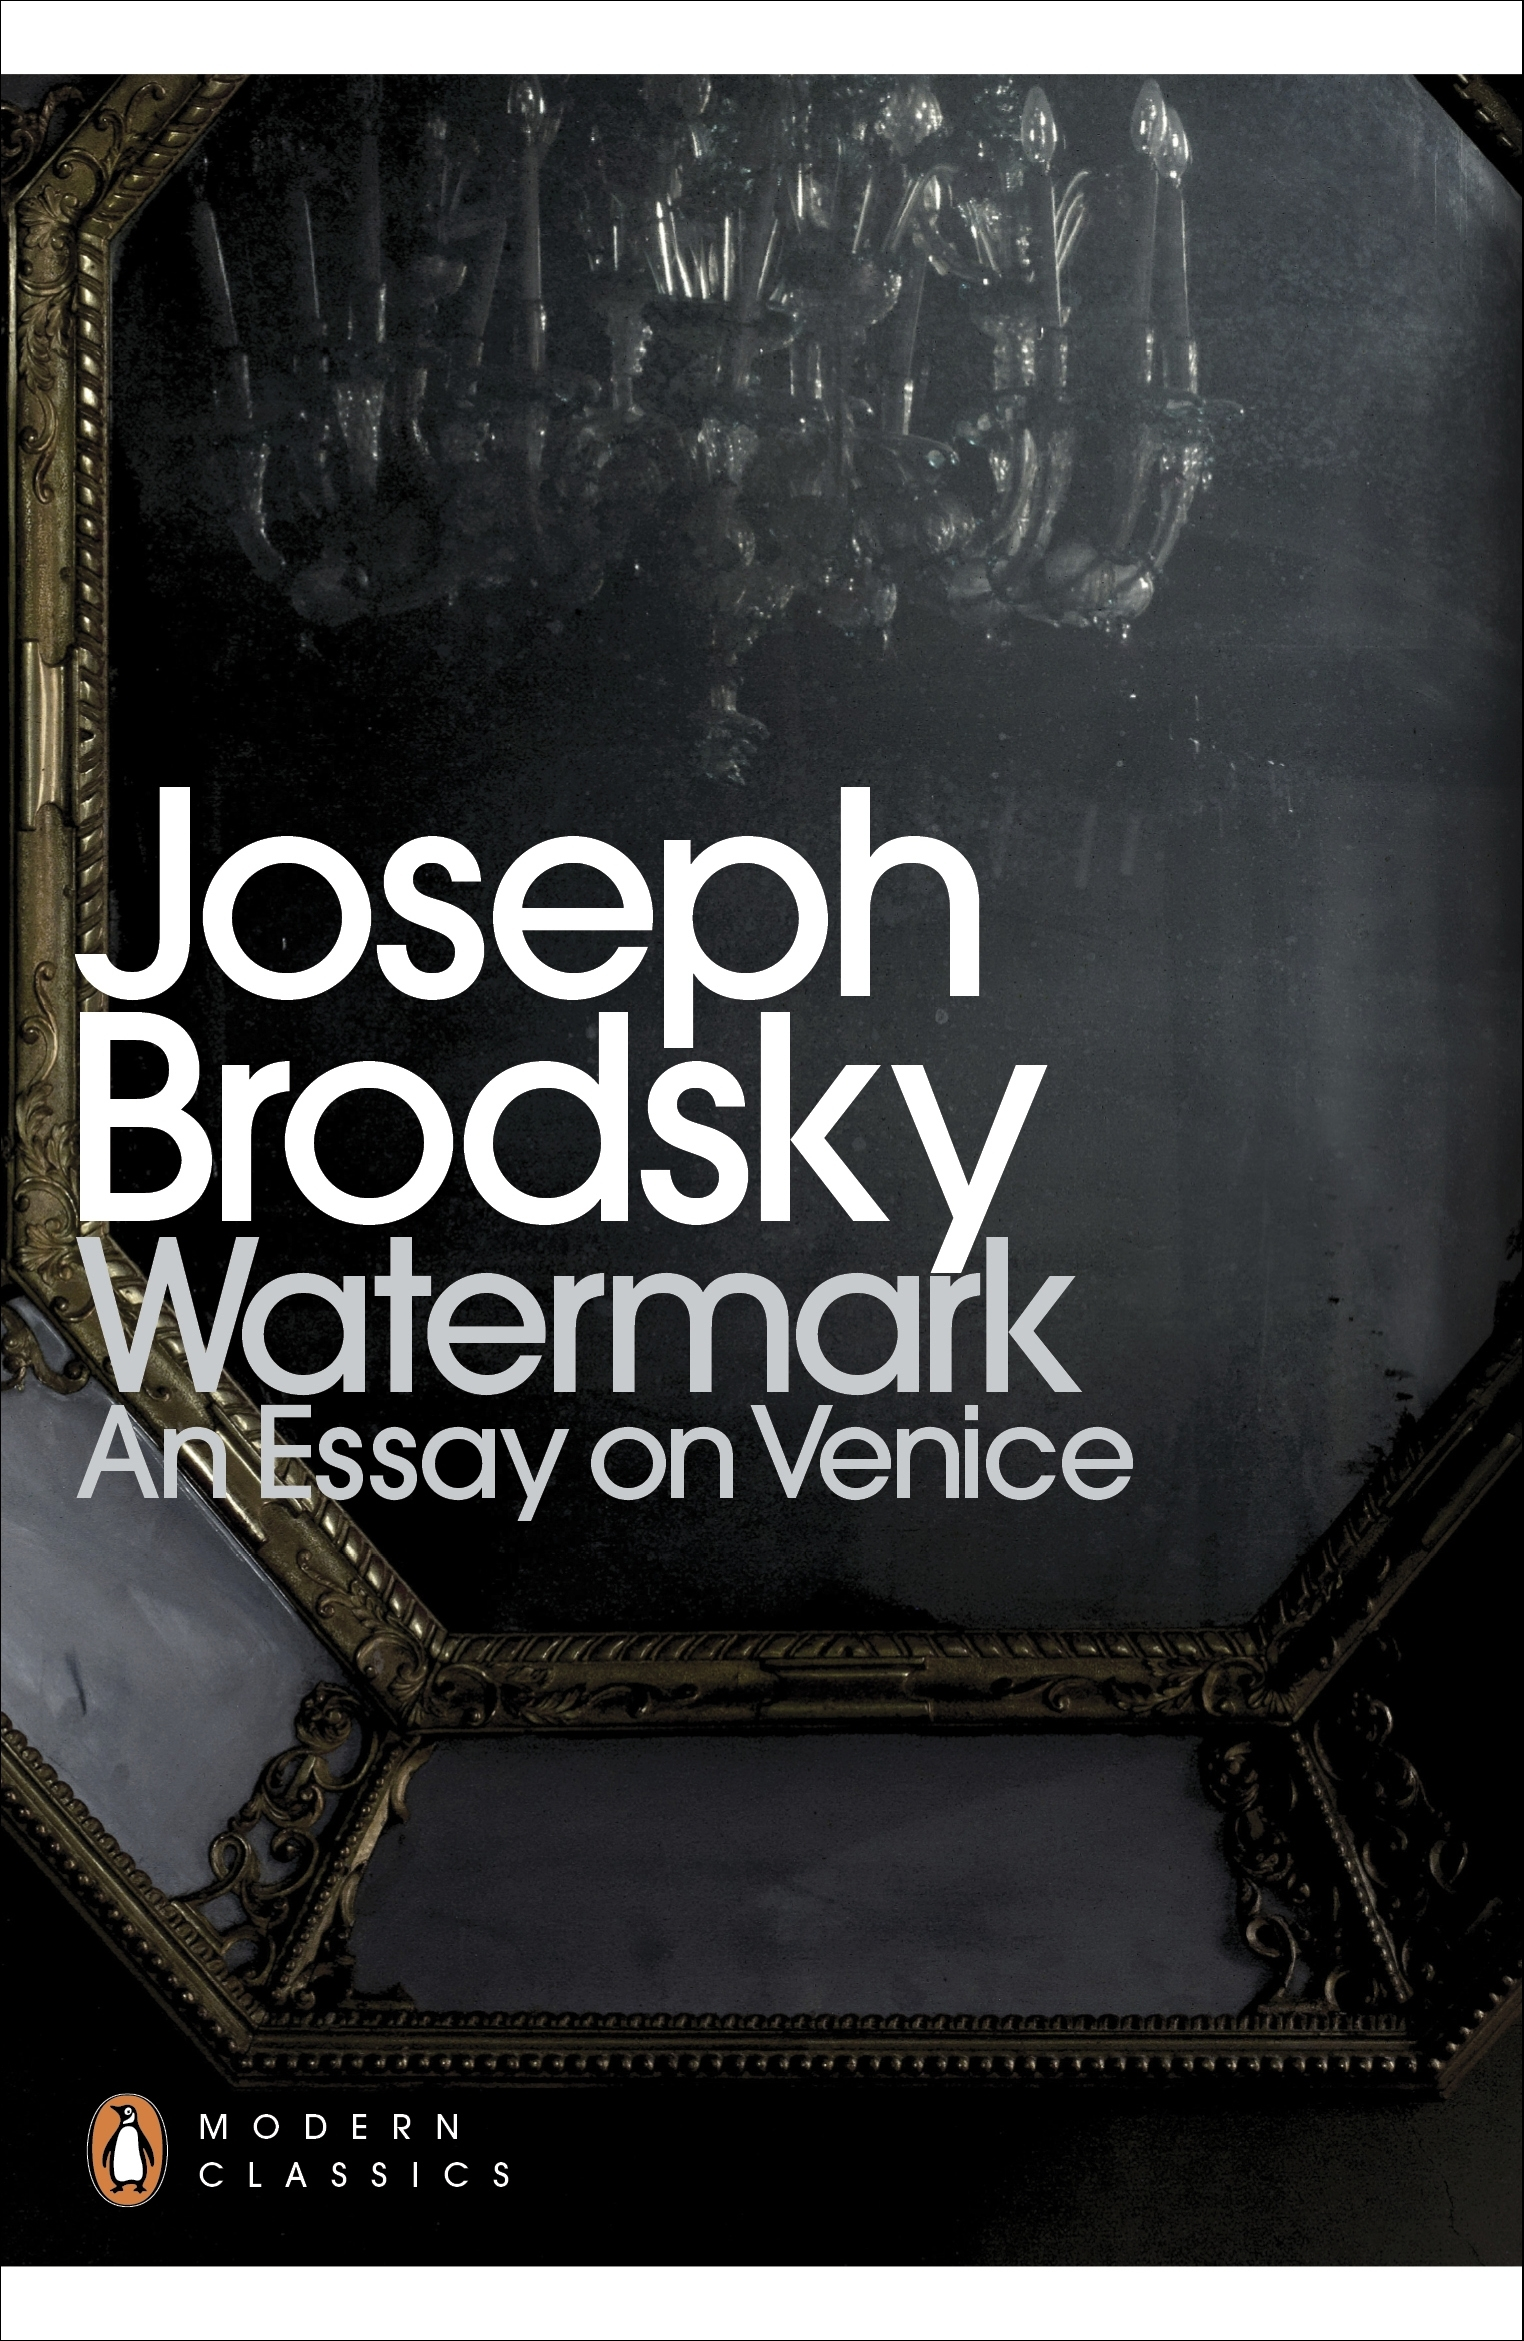 joseph brodsky essays Elena shvarts, joseph brodsky, andrei tarkovsky  elegies, and compensatory gestures abound even when they do not satisfy in this essay, i ask how poems use the limits of language in order to explore unlimited grief i also want to  joseph brodsky and elena shvarts both have written movingly about the.